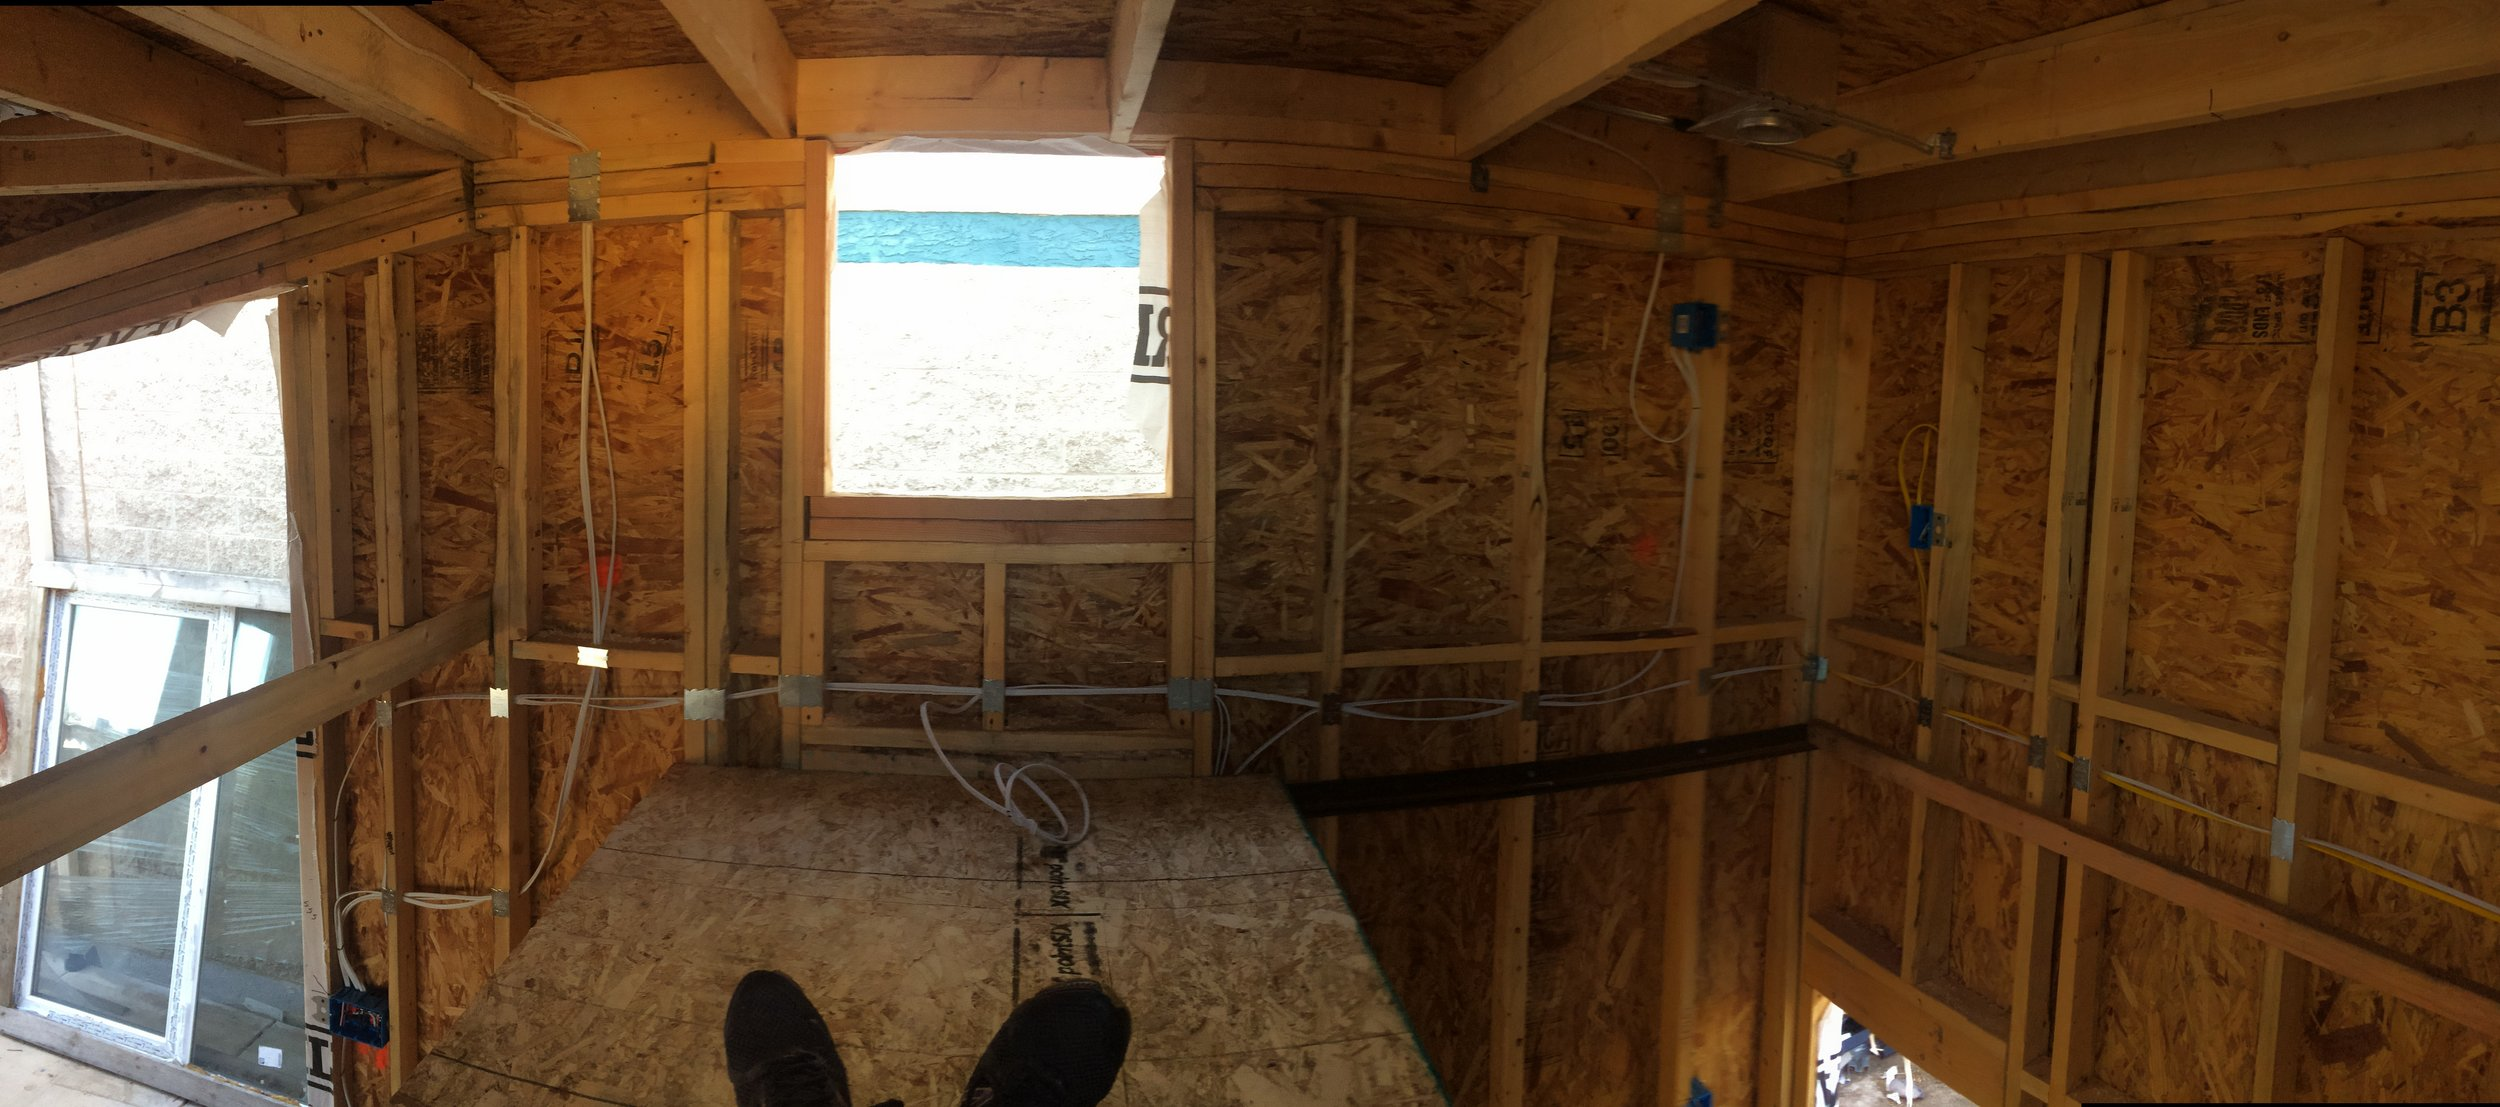 I'm sitting in the loft facing the left side. The loft will extend all the way to the rear wall. Looks like there will plenty of room for a queen bed and some small storage without being cramped. Outlets flank either side of the bed for easy electronic charging.